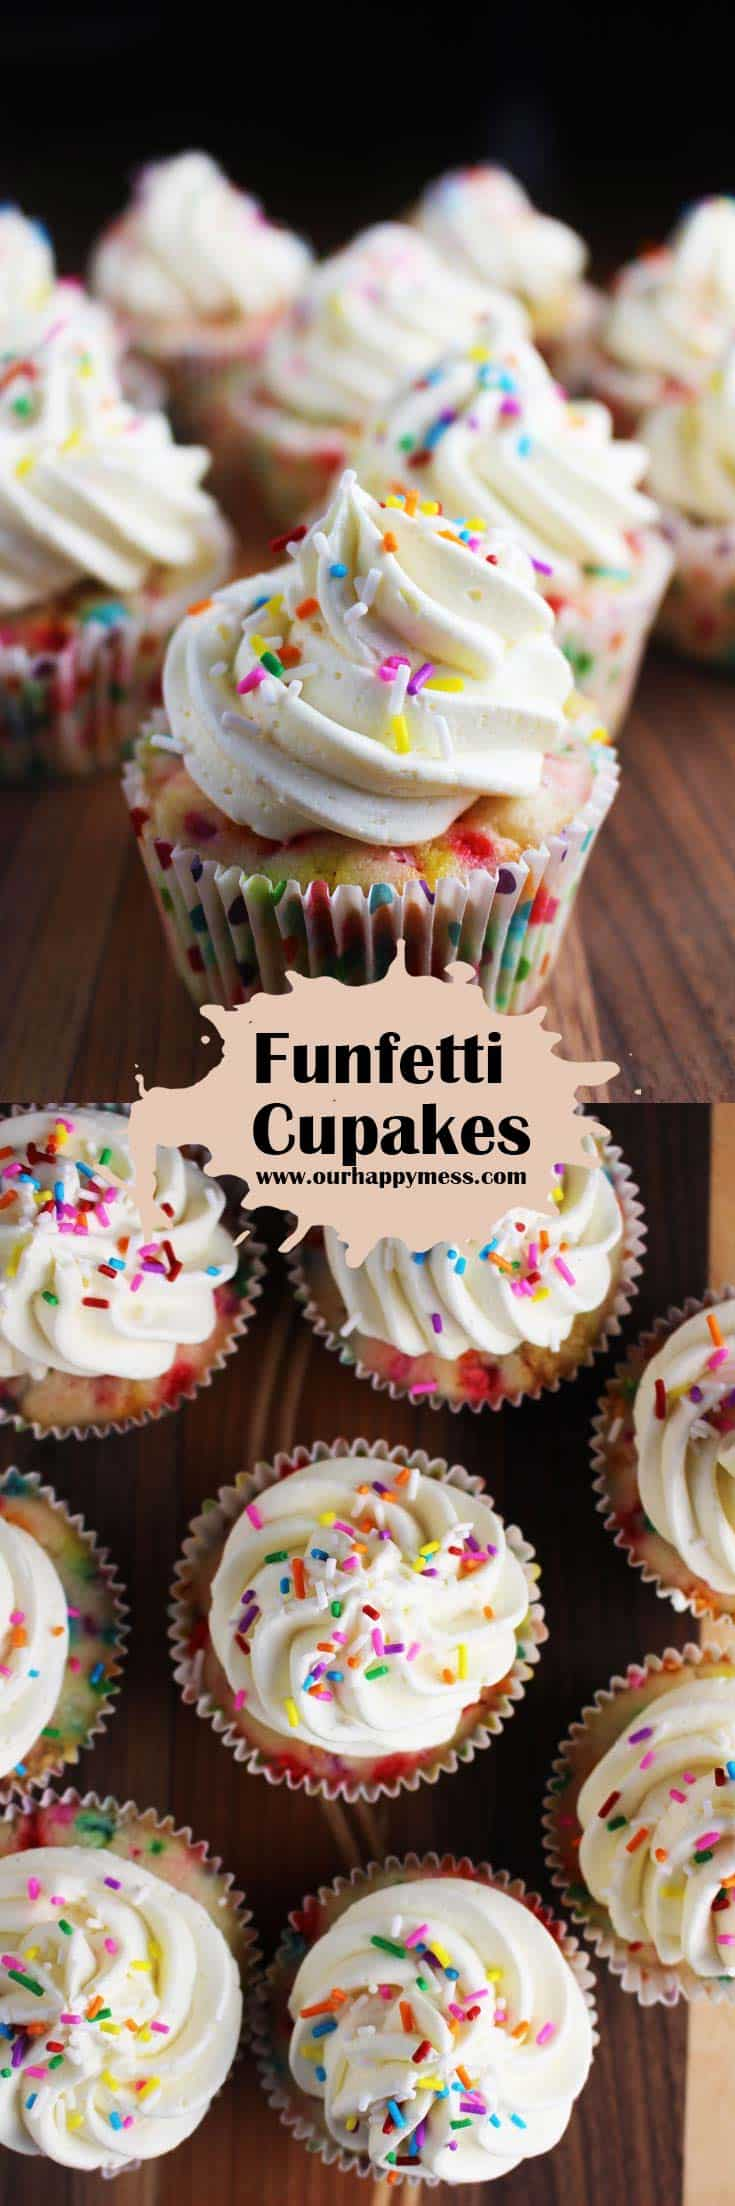 These homemade funfetti cupcakes are moist and delicious with a light, fluffy frosting that tastes just like vanilla ice cream! #cupcakes